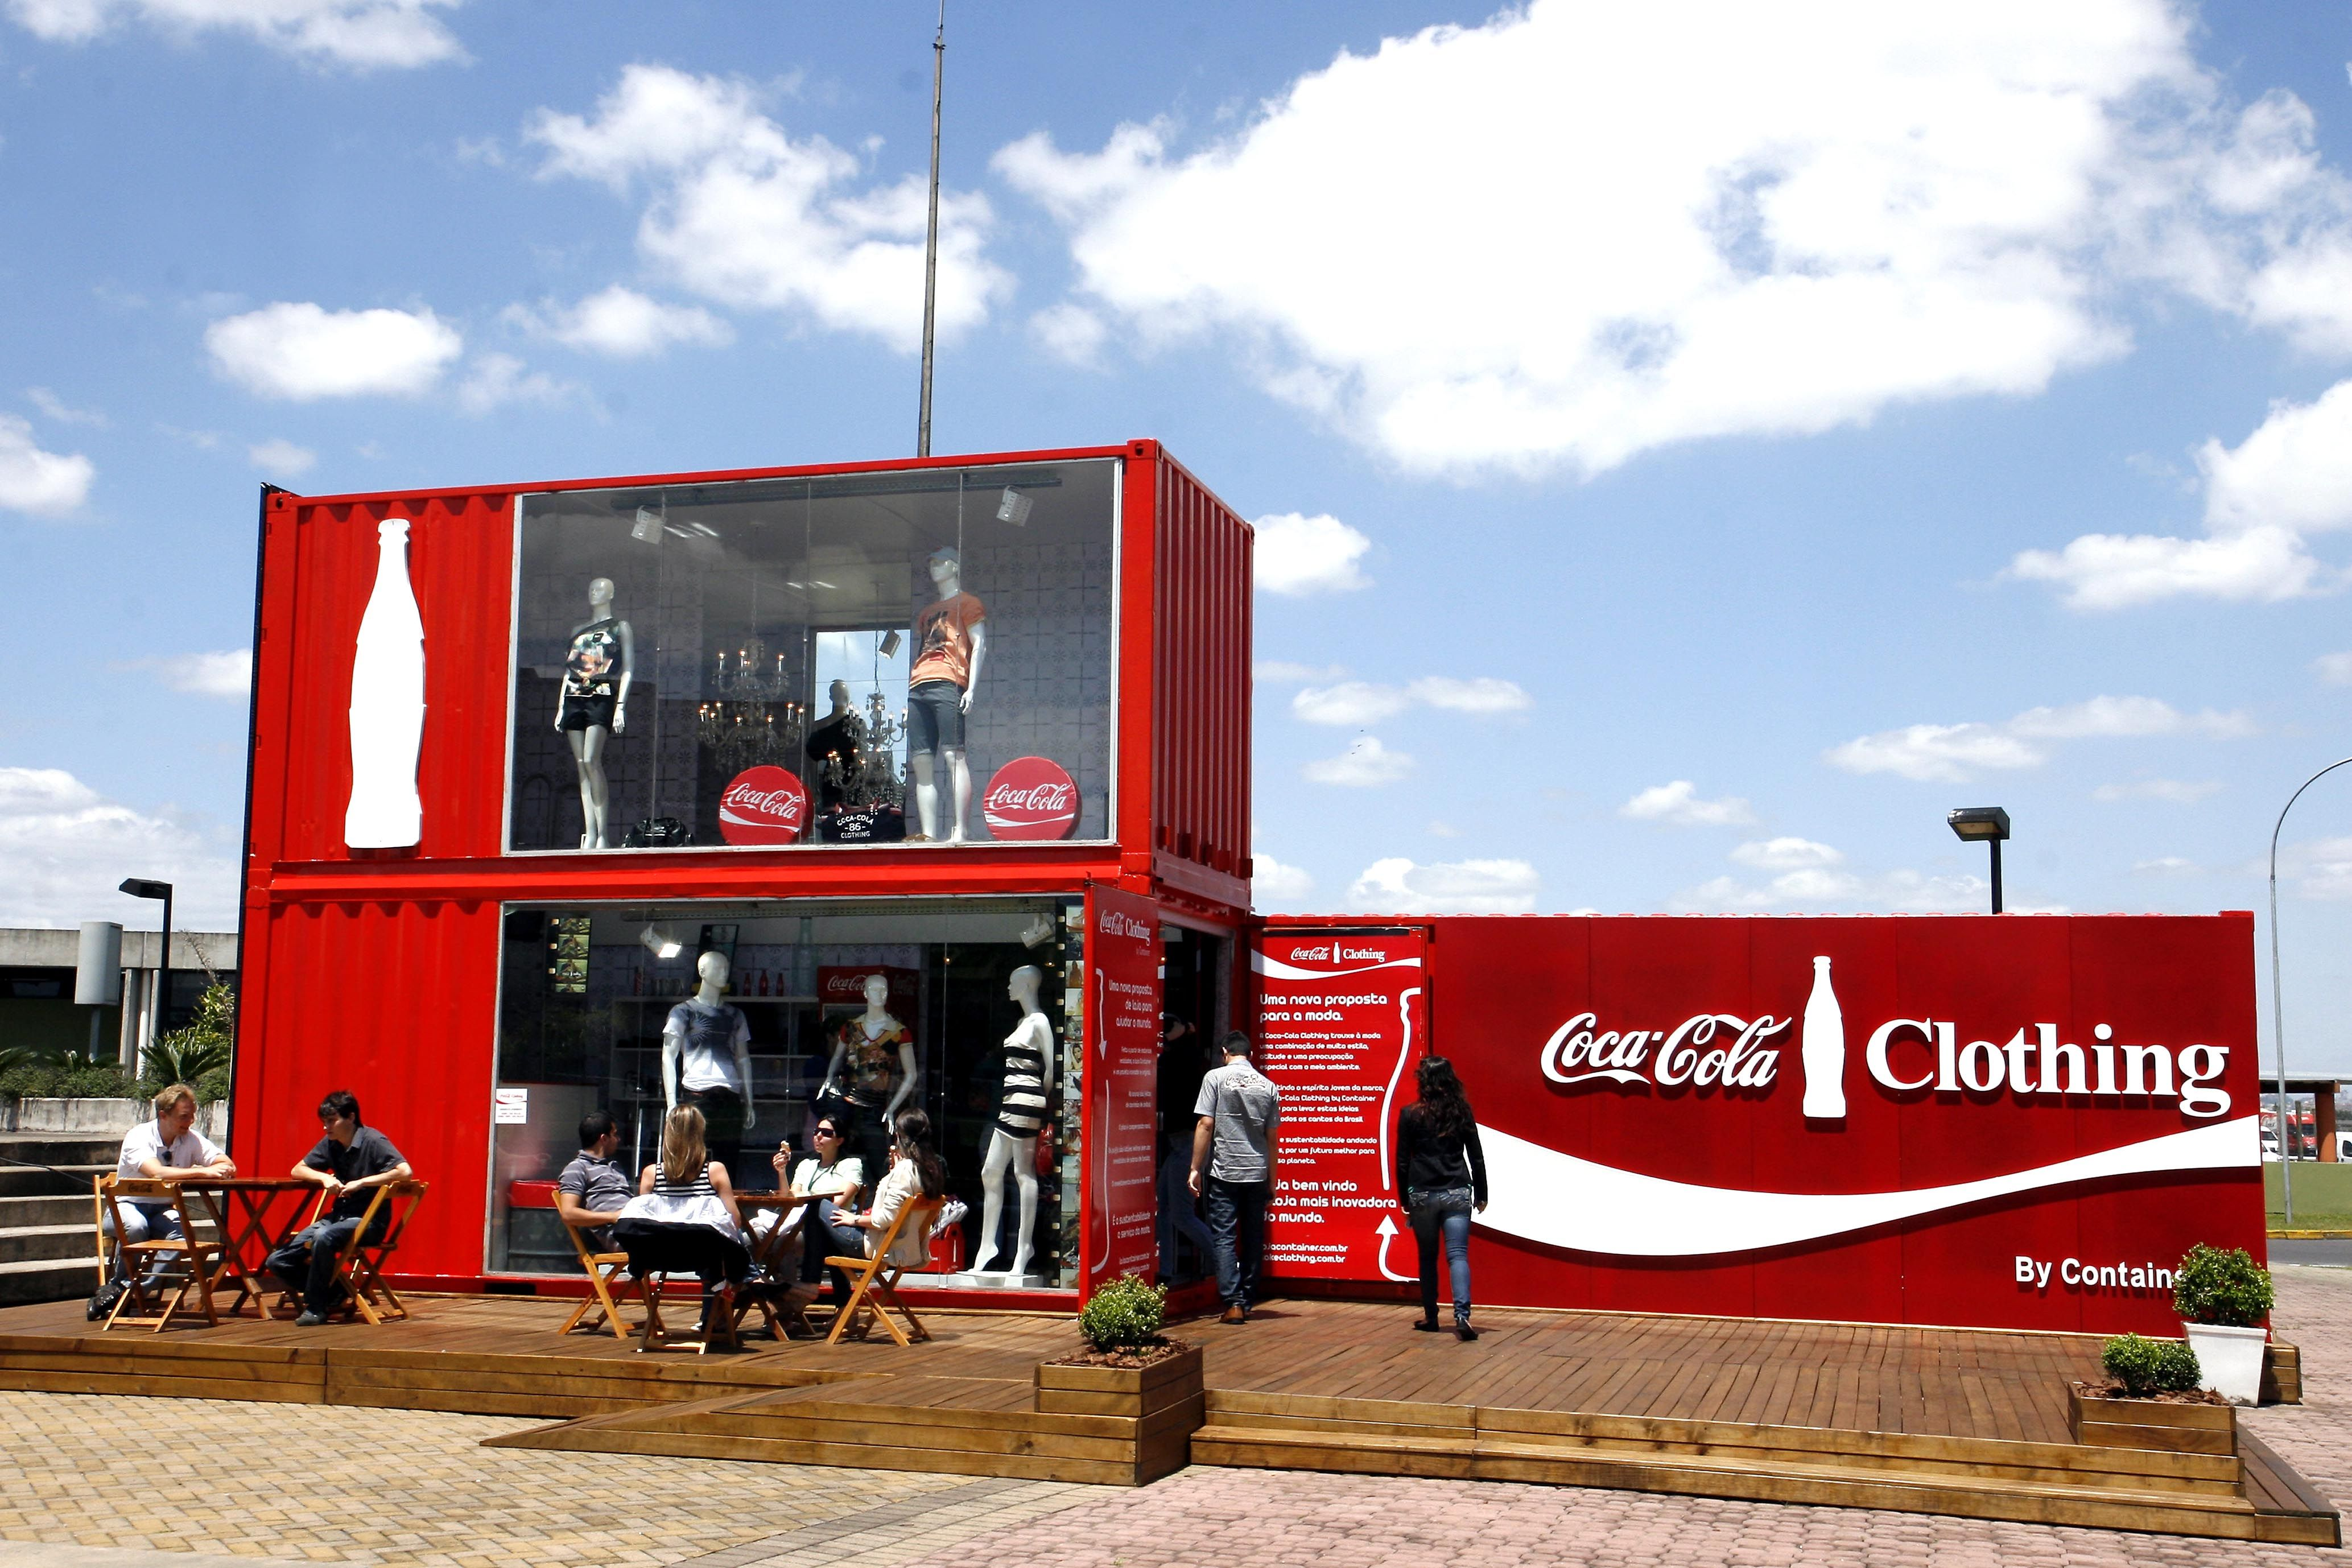 Coca Cola Clothings Store Front View